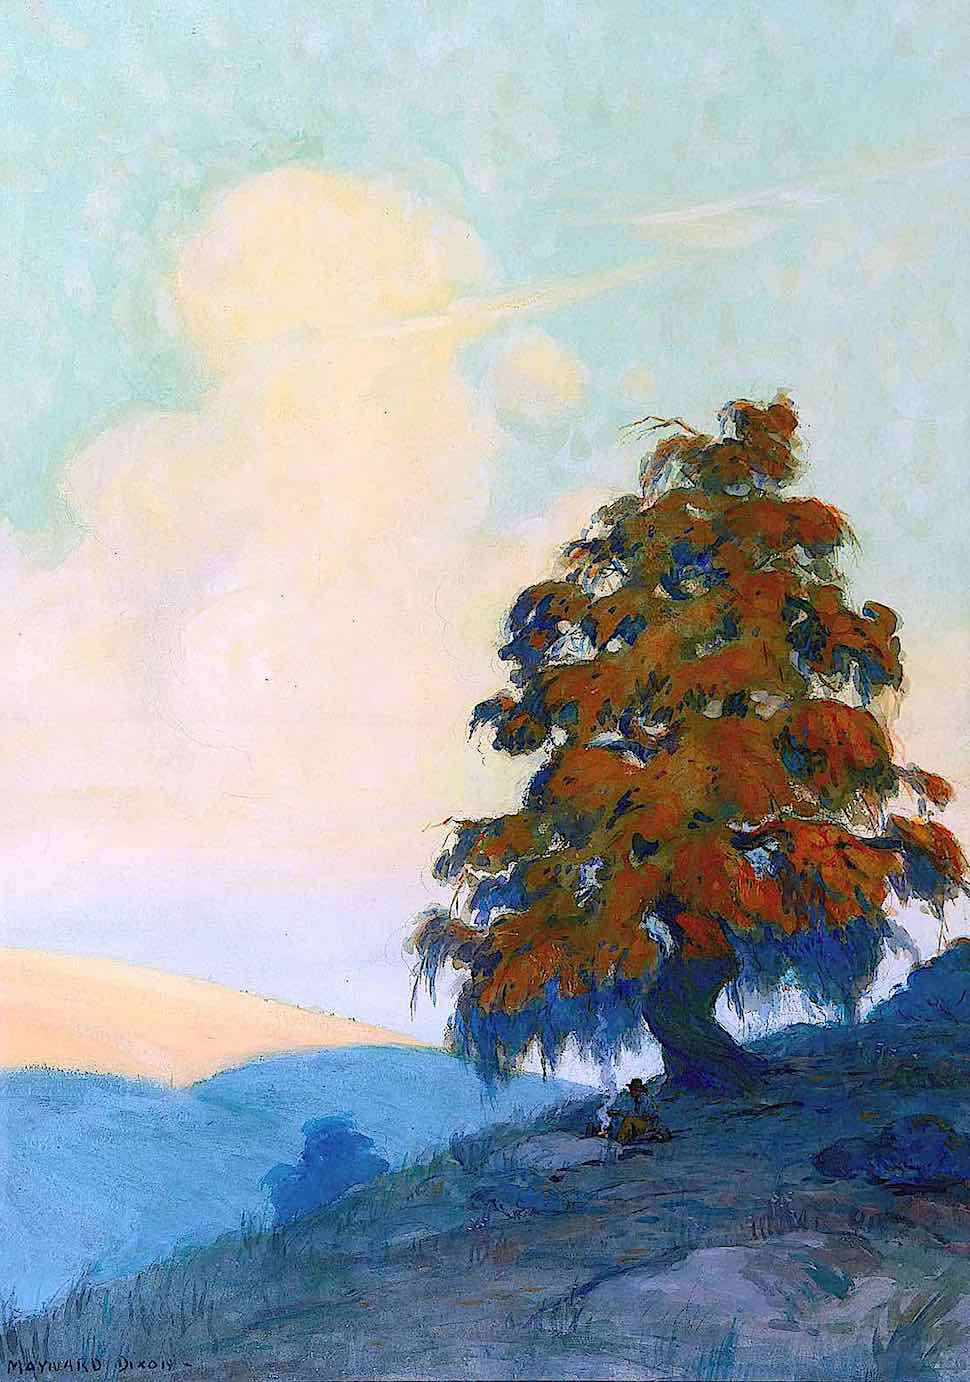 a Maynard Dixon painting of a cowboy's campfire under a giant tree